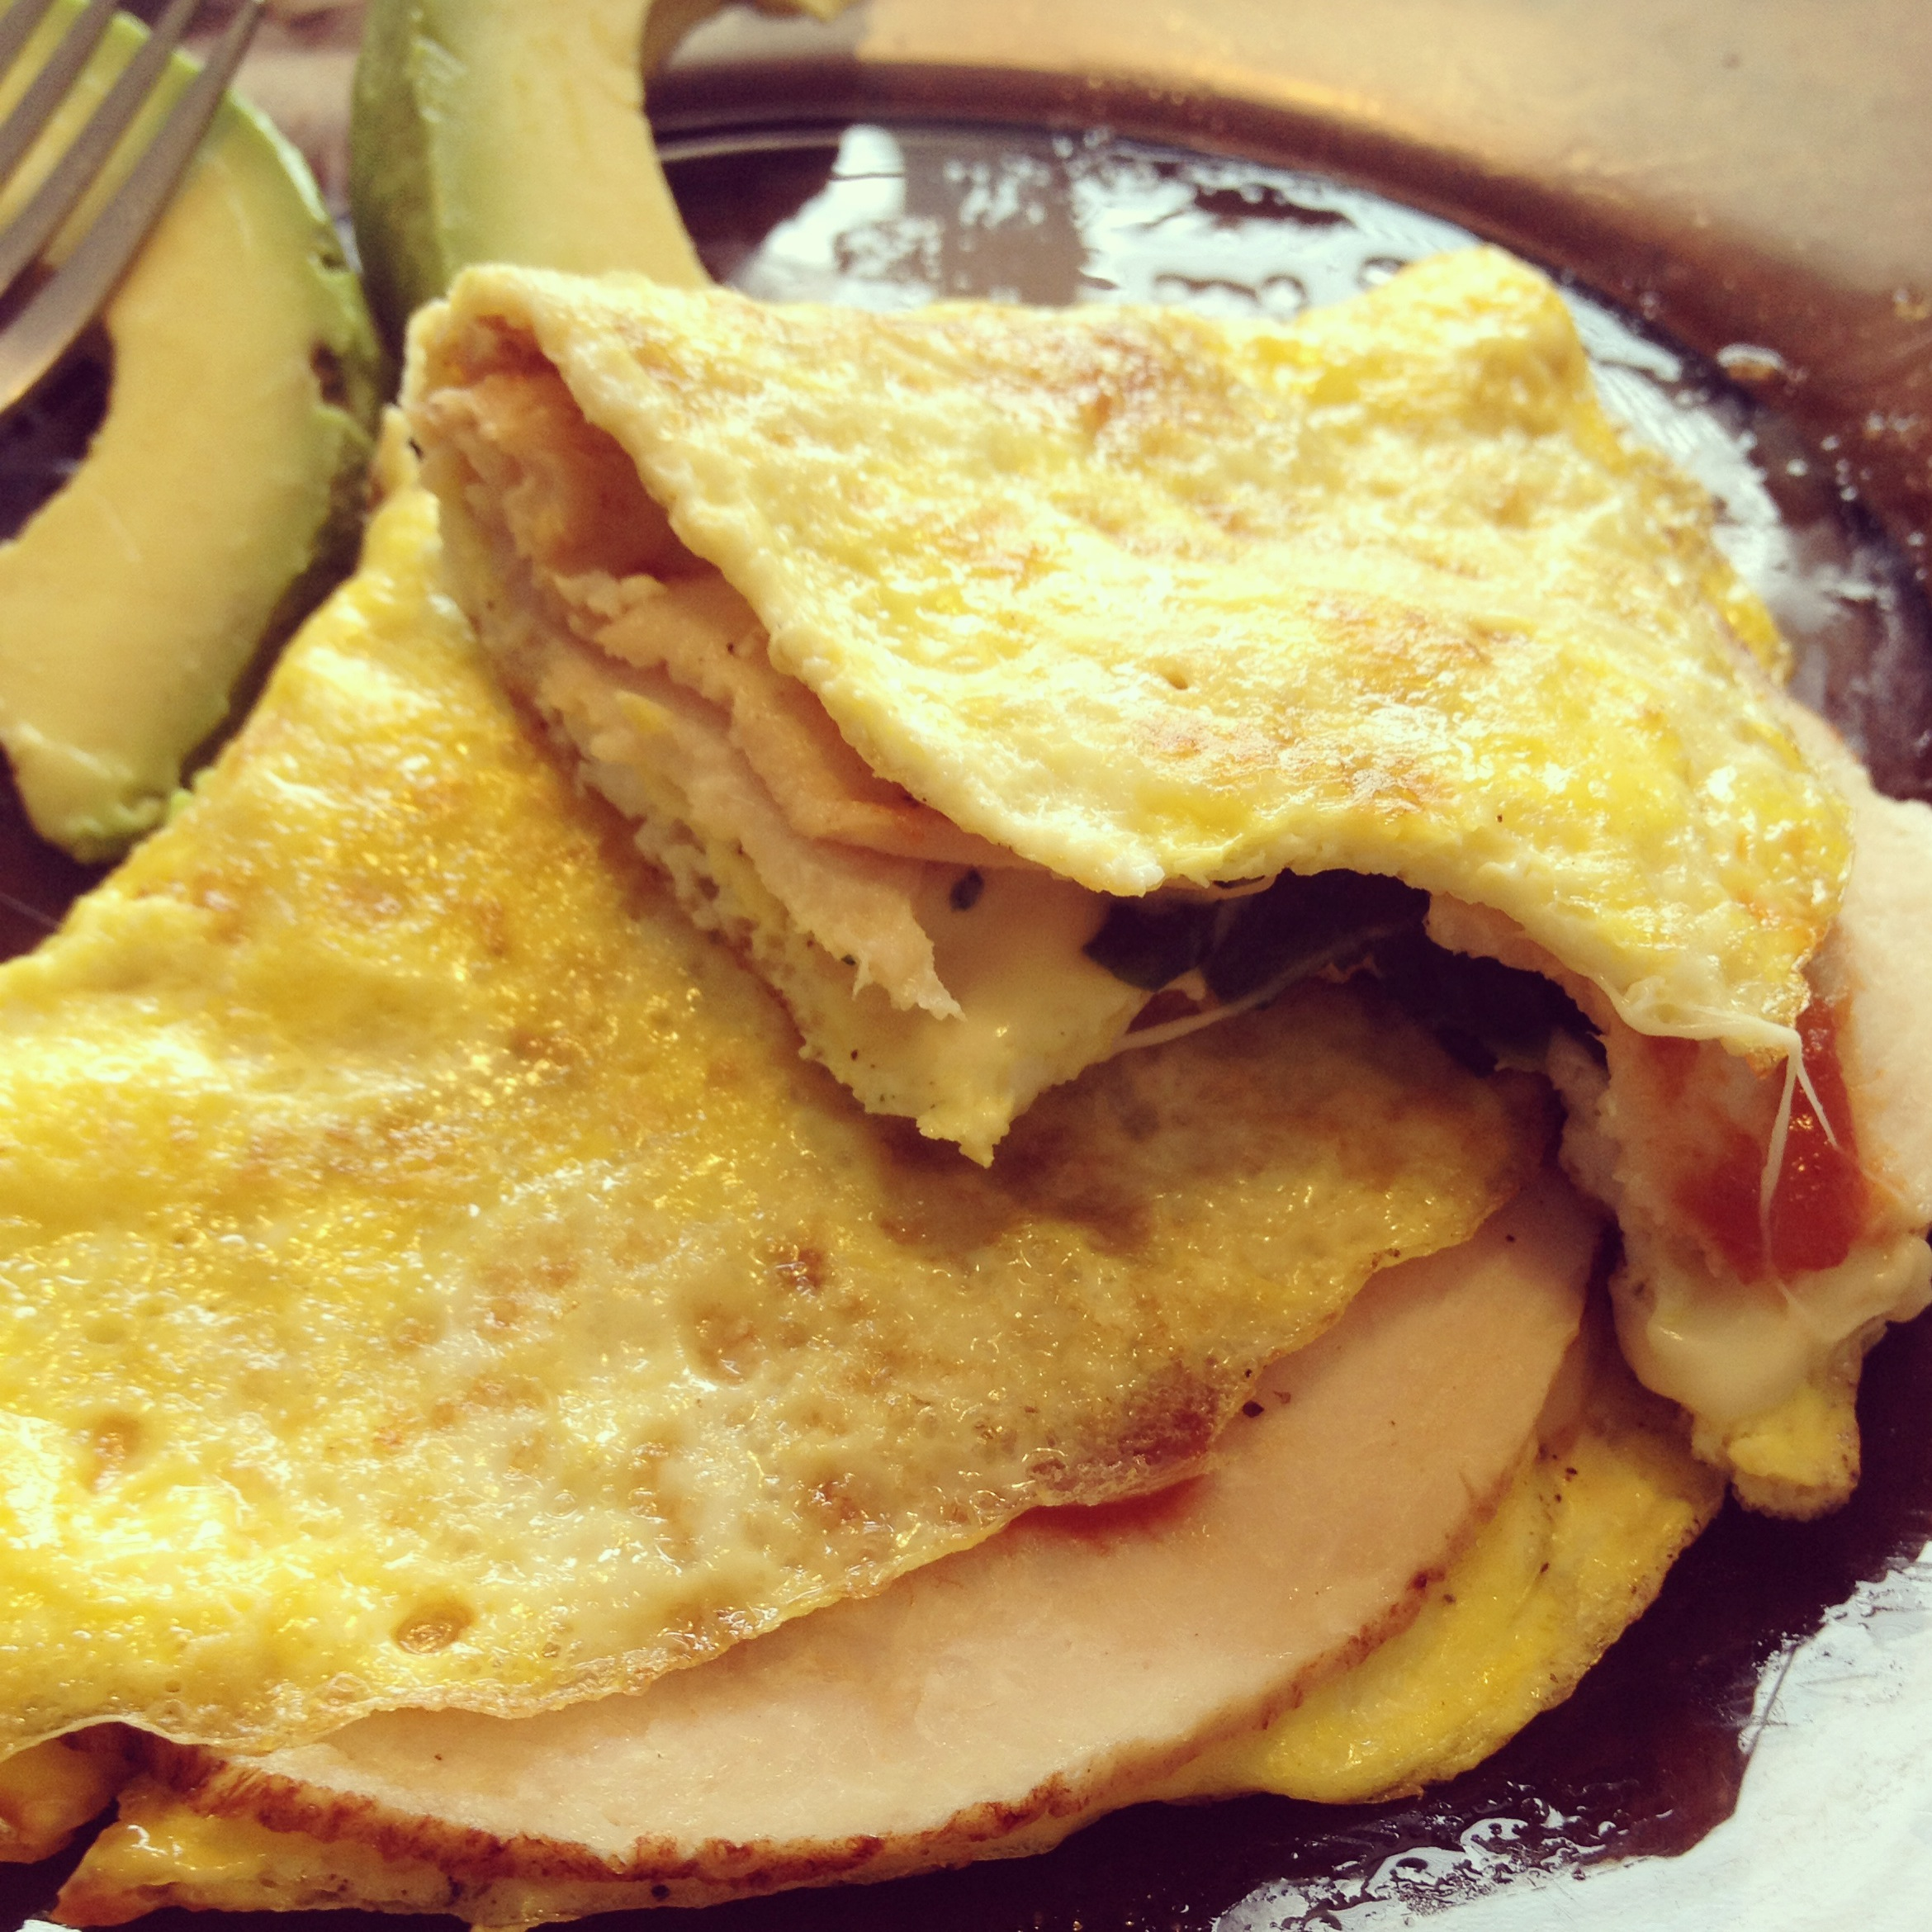 """panini with eggs as the """"bread"""" - get creative in the kitchen! eggs don't just need to be for breakfast ;)"""